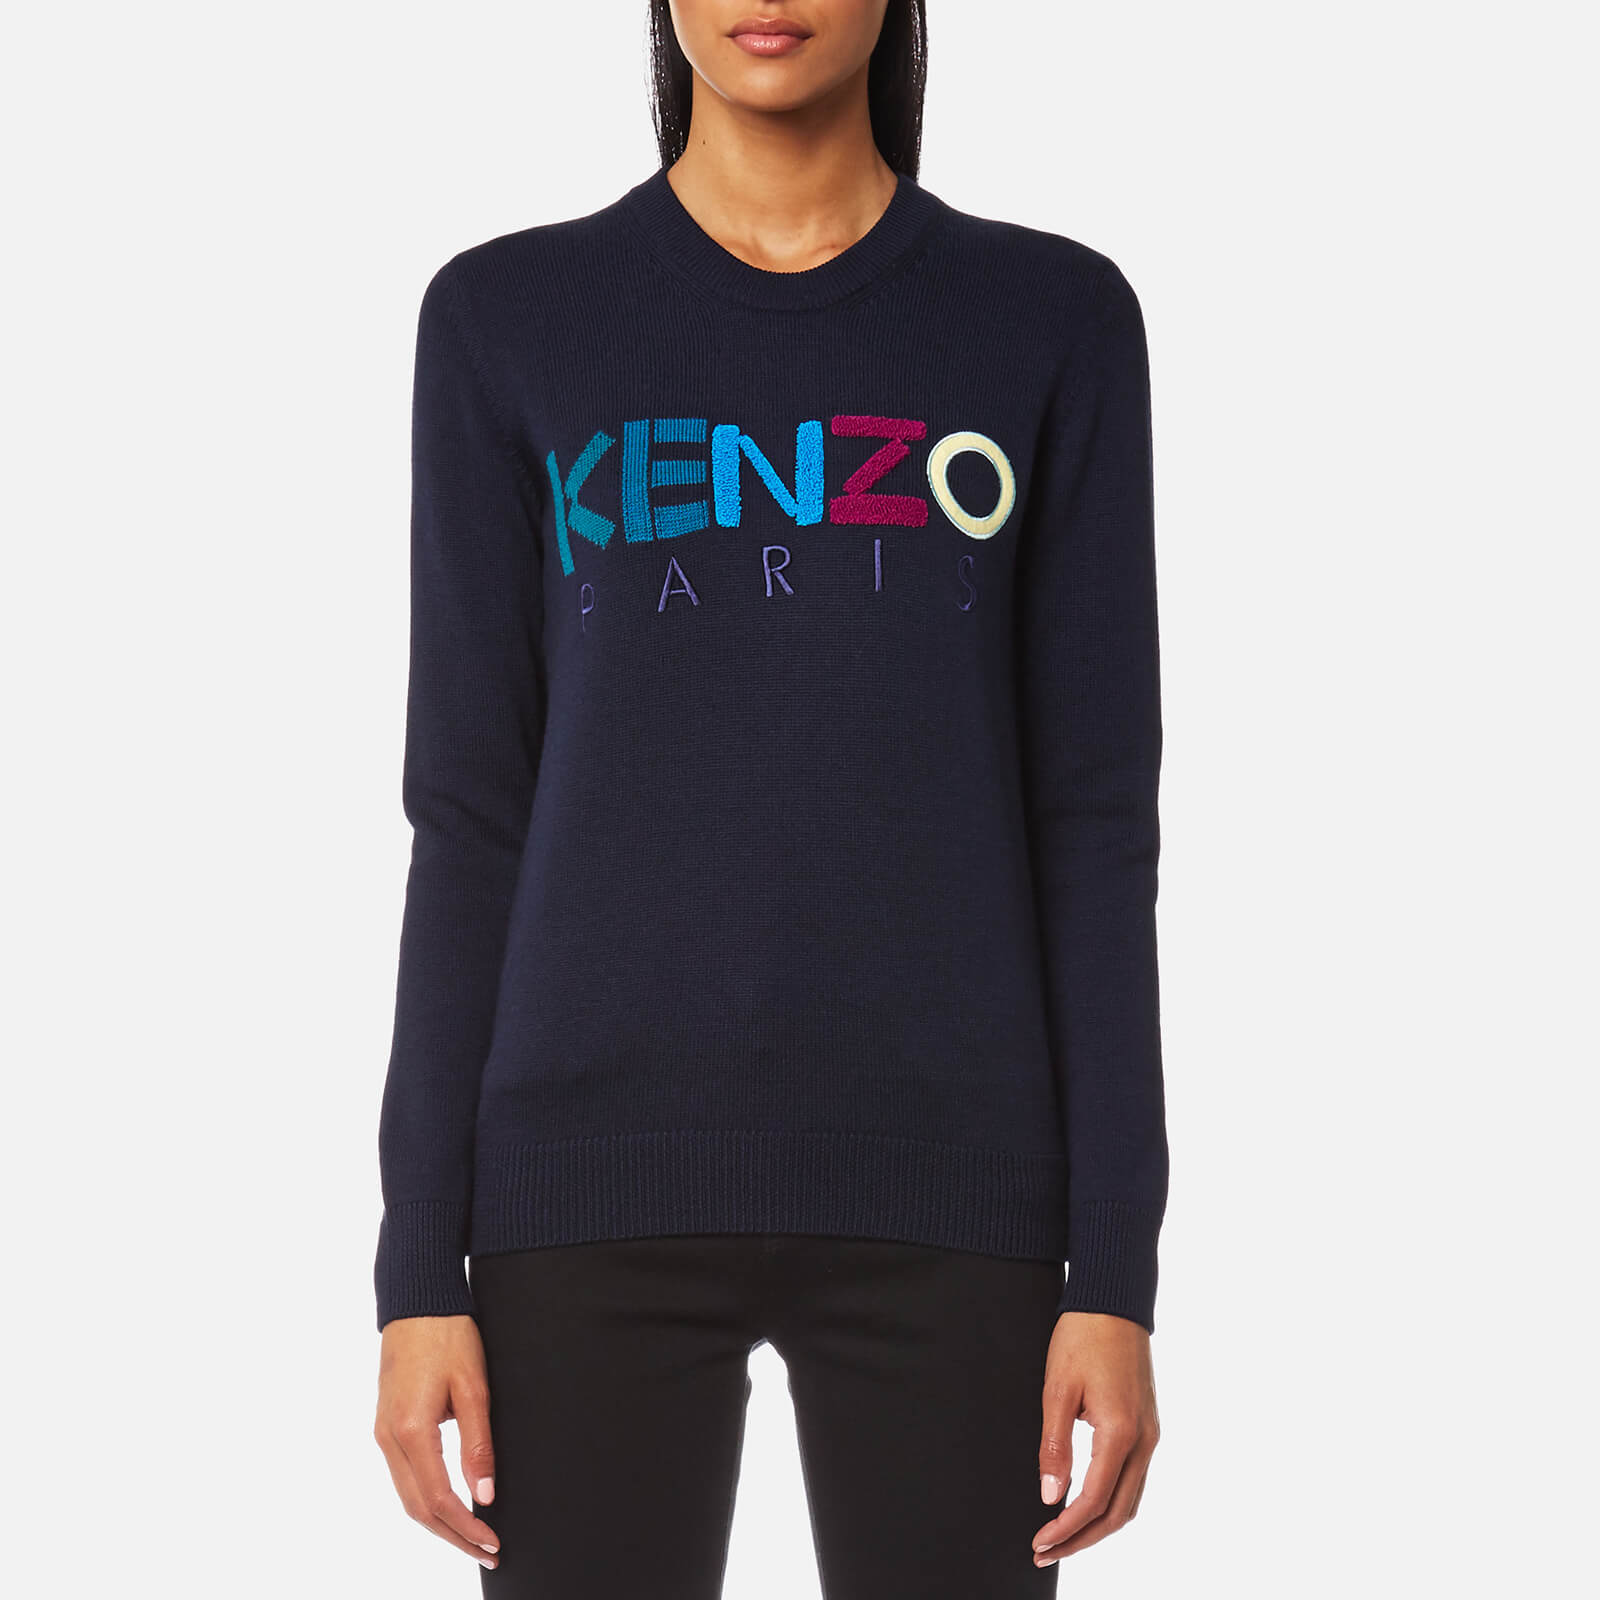 8f9fea55fbb KENZO Women's Kenzo Paris Wool Knitted Jumper - Blue - Free UK Delivery  over £50